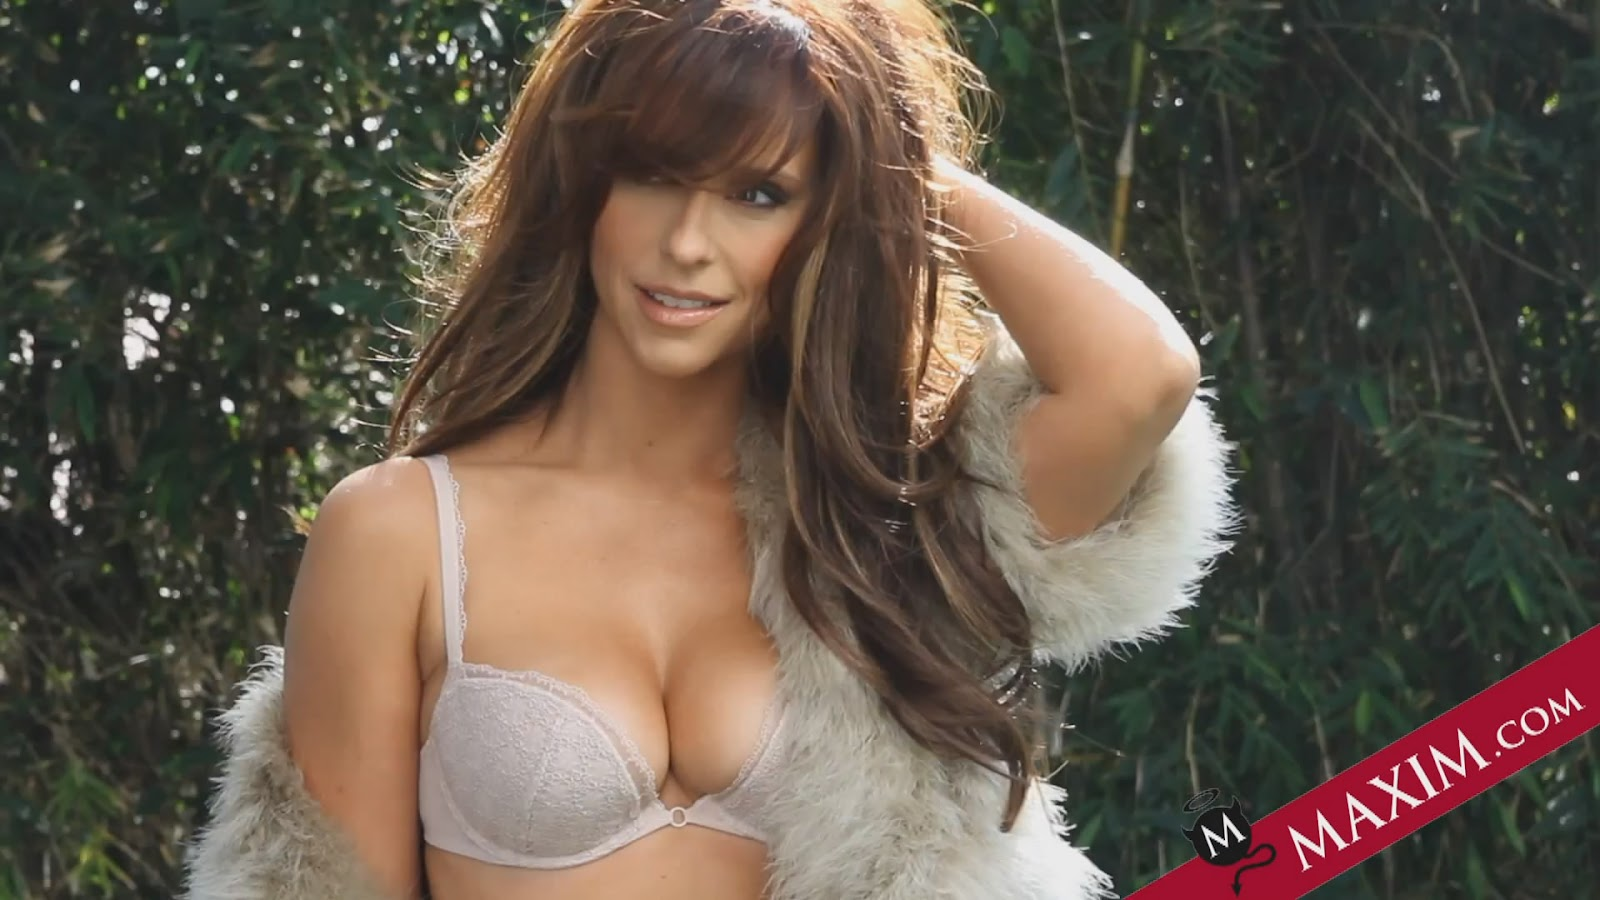 Can help jennifer love hewitt bra